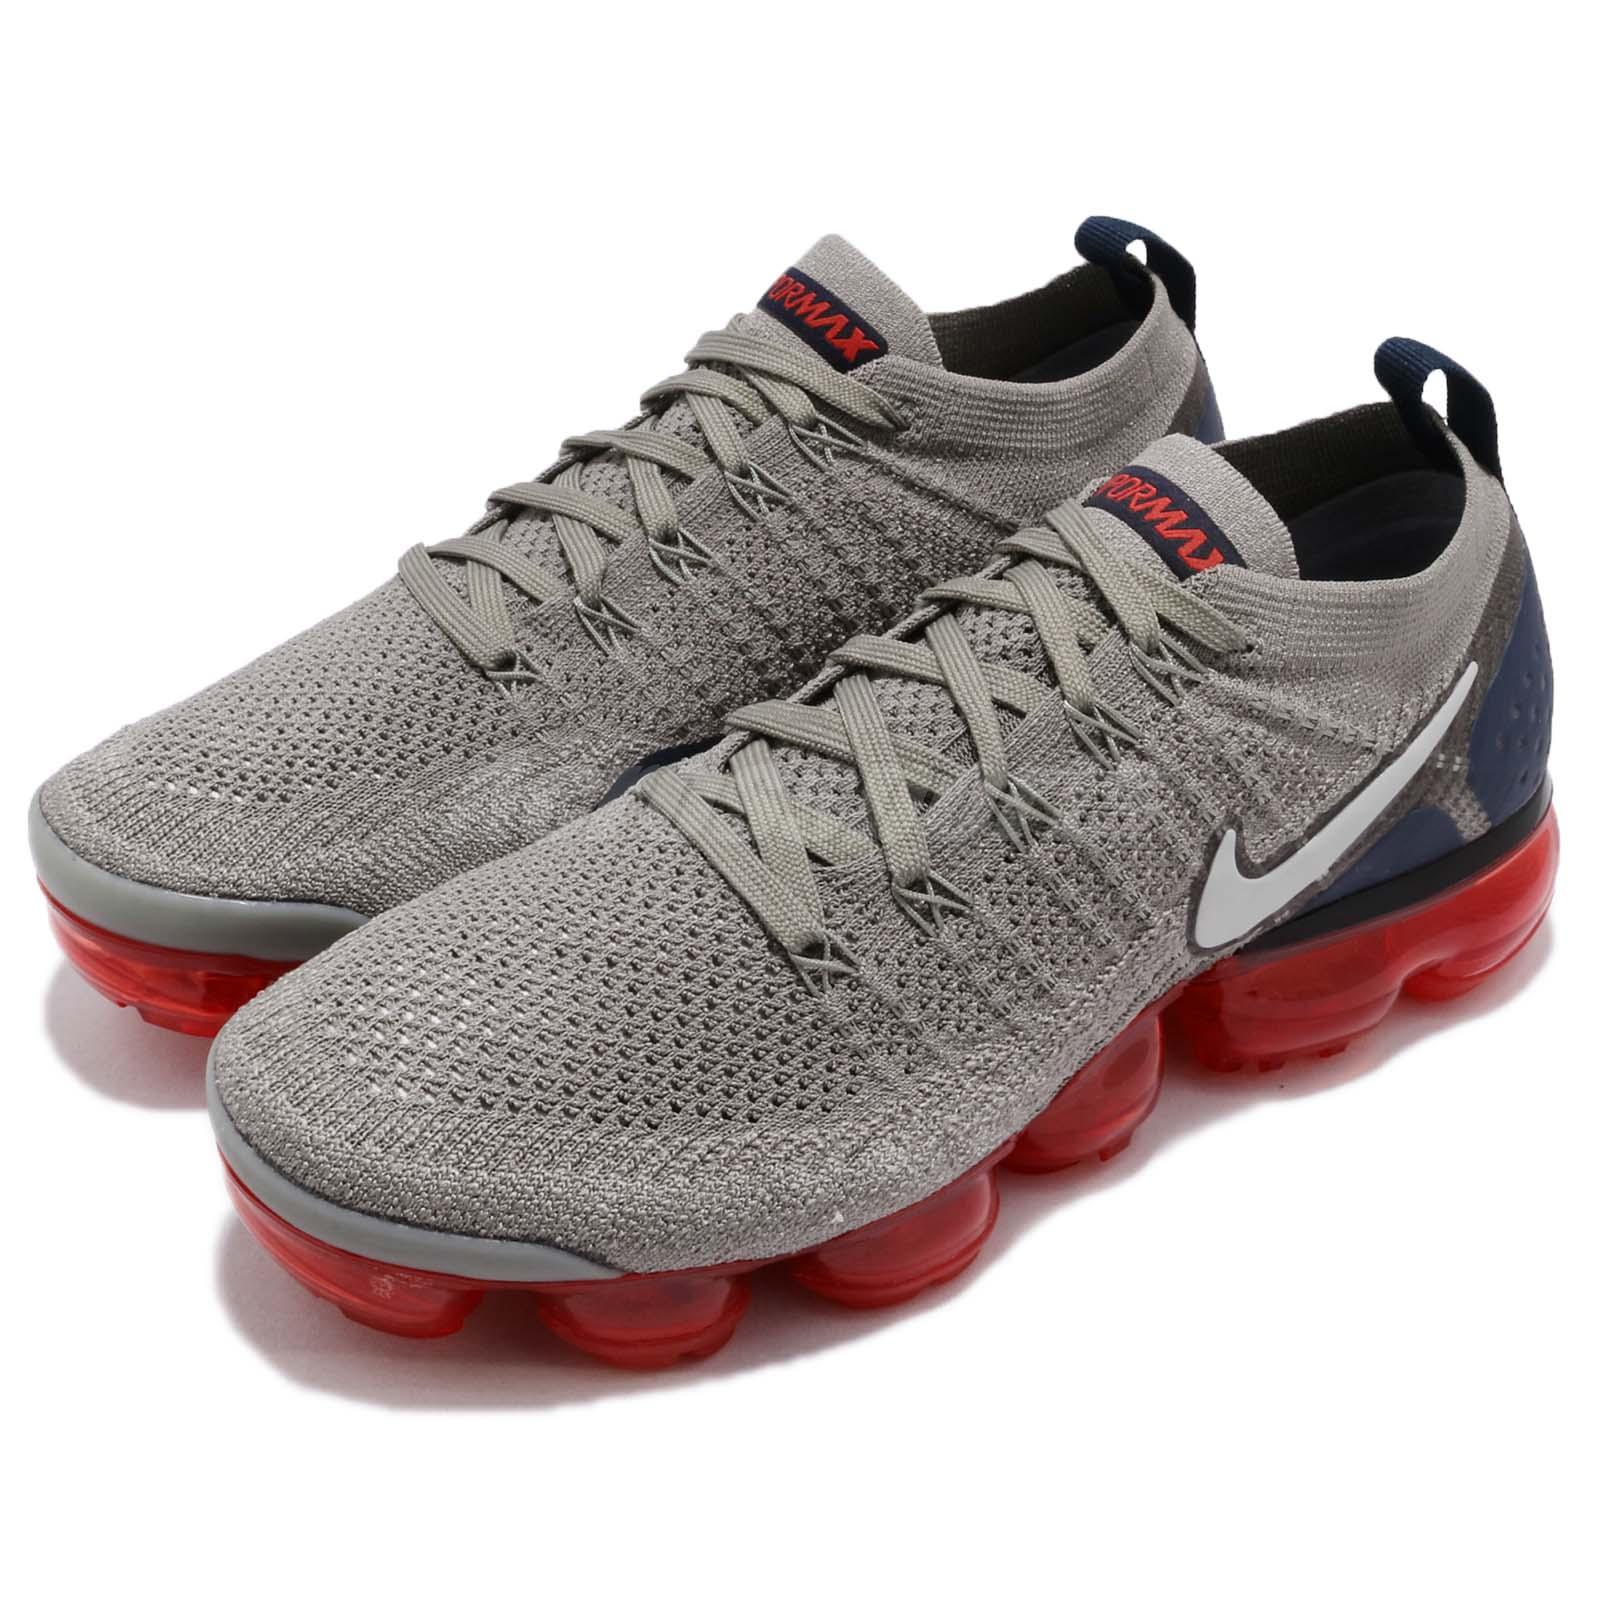 5f15a573902 Details about Nike Nike Air Vapormax Flyknit 2 II Dark Stucco Navy Red Men Shoes  942842-010